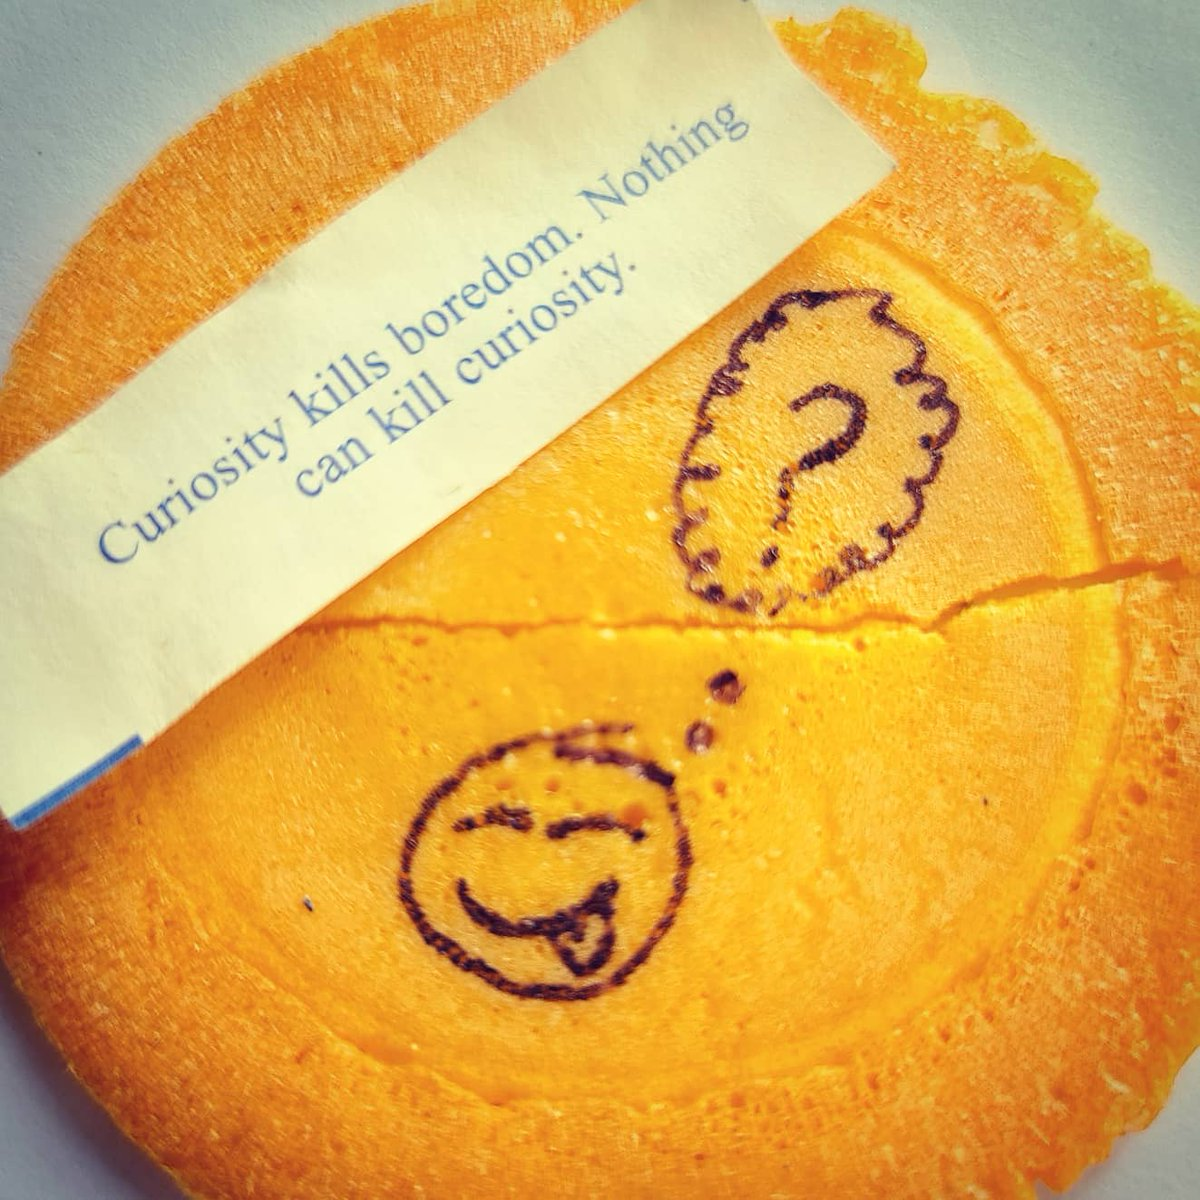 Praise be to the Universe and the Great Fortune Cookie!#fortunecookie #fortunecookieart #cookieart #art #loveart #cannabiscommunity #cannabisculture #cannabis #420friendly #420daily #weedlife #weedculture #altarofthegreatfortunecookie #silliness #curiosity #followcuriositypic.twitter.com/sp0wk43yvj